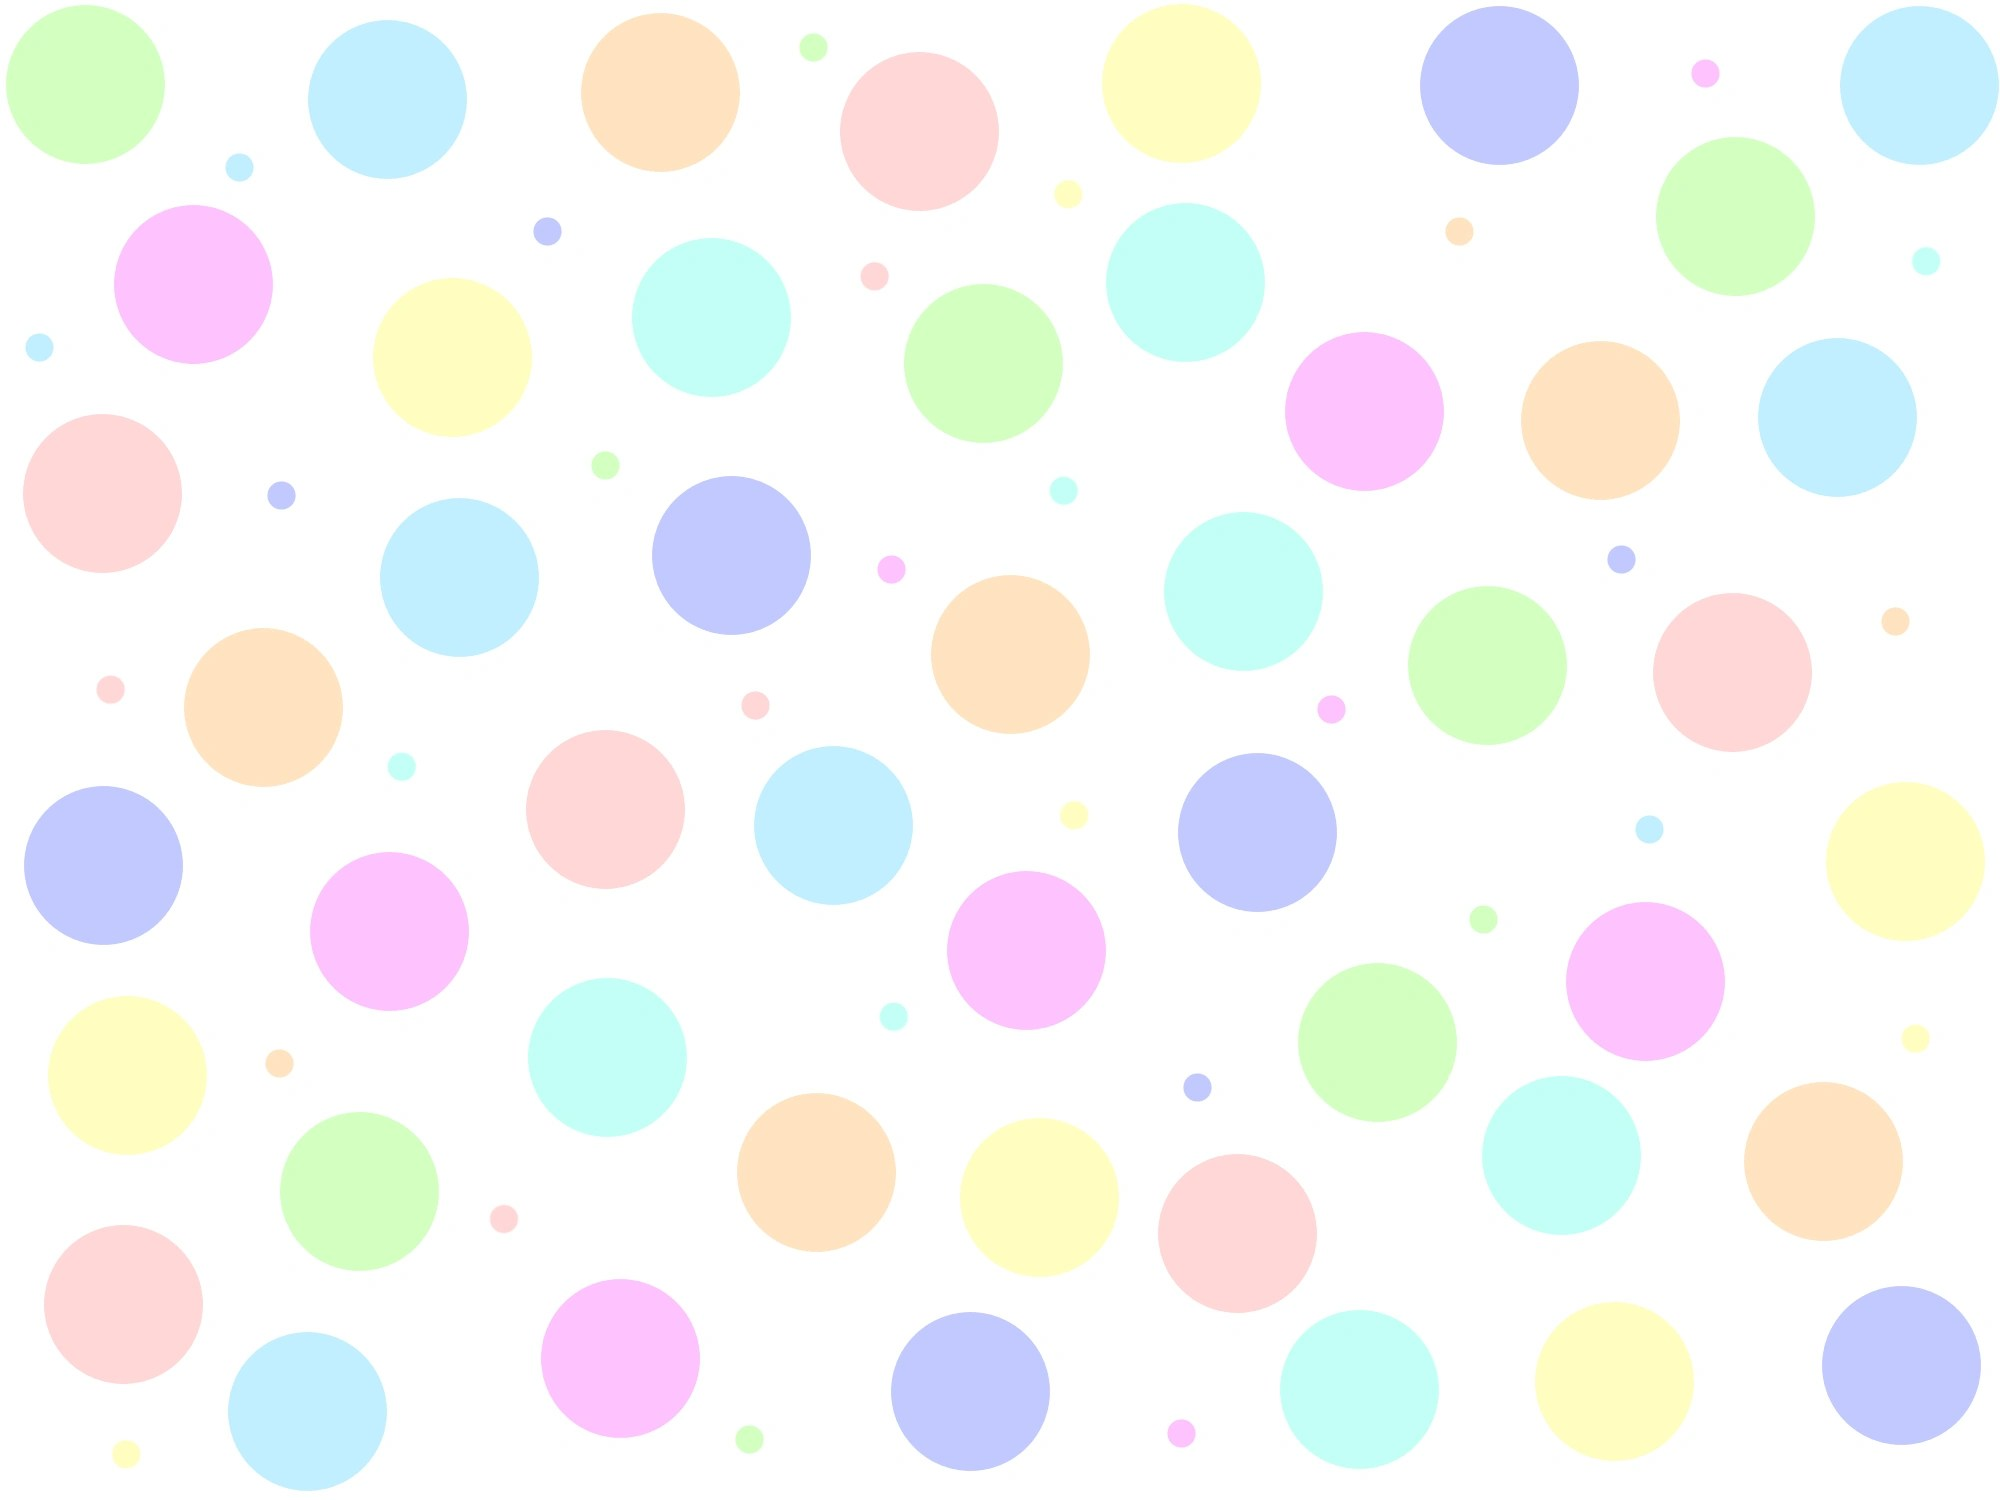 Cute Otter Wallpaper Image Pastel Dots Wallpaper Png Wotter Power S Wiki